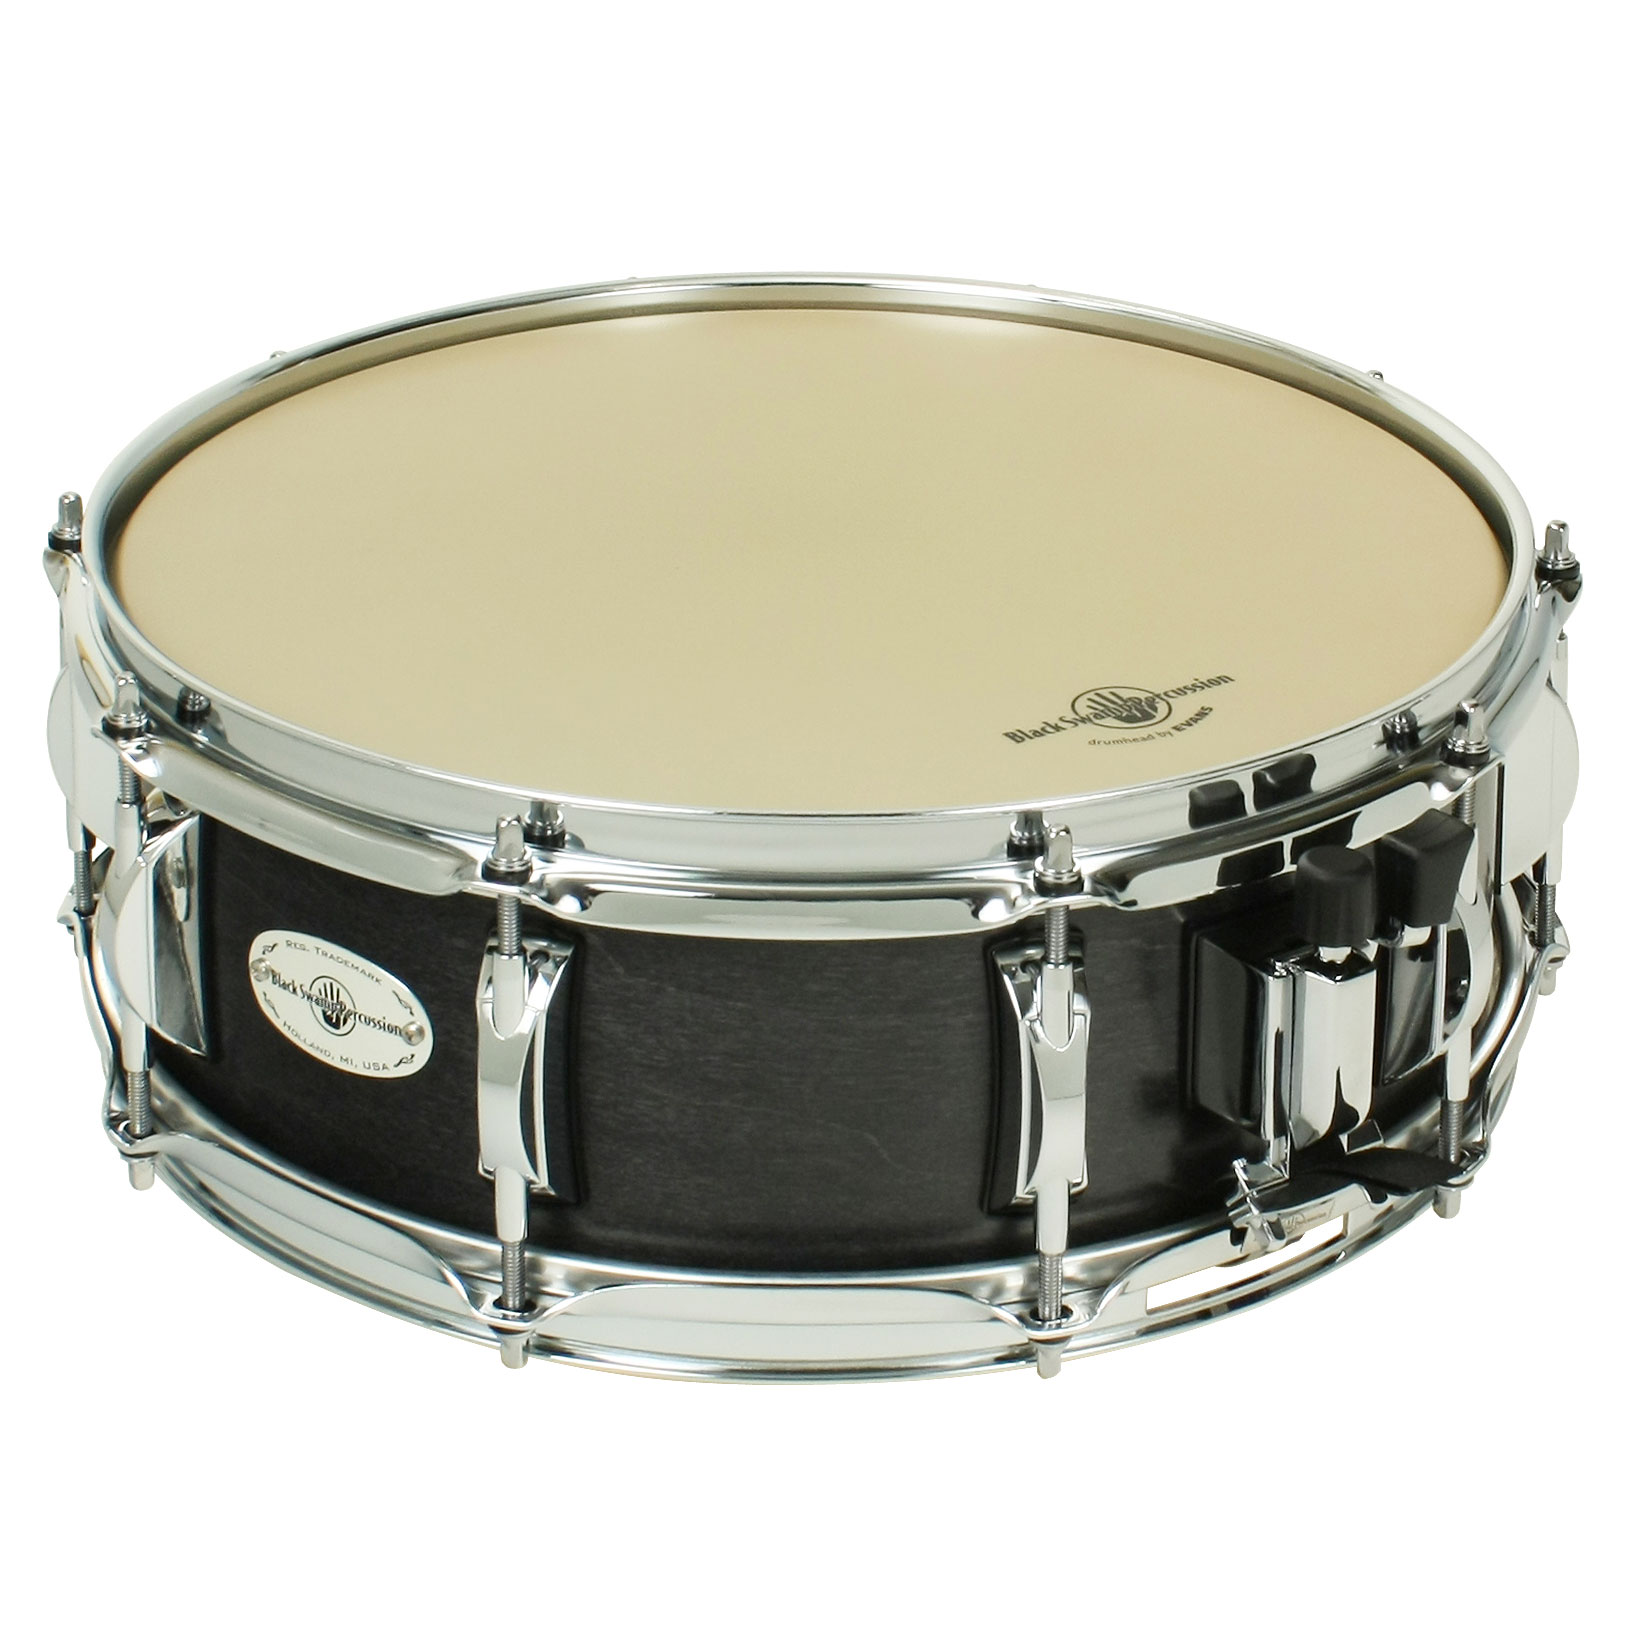 "Black Swamp 5"" x 14"" Concert Maple Snare Drum"